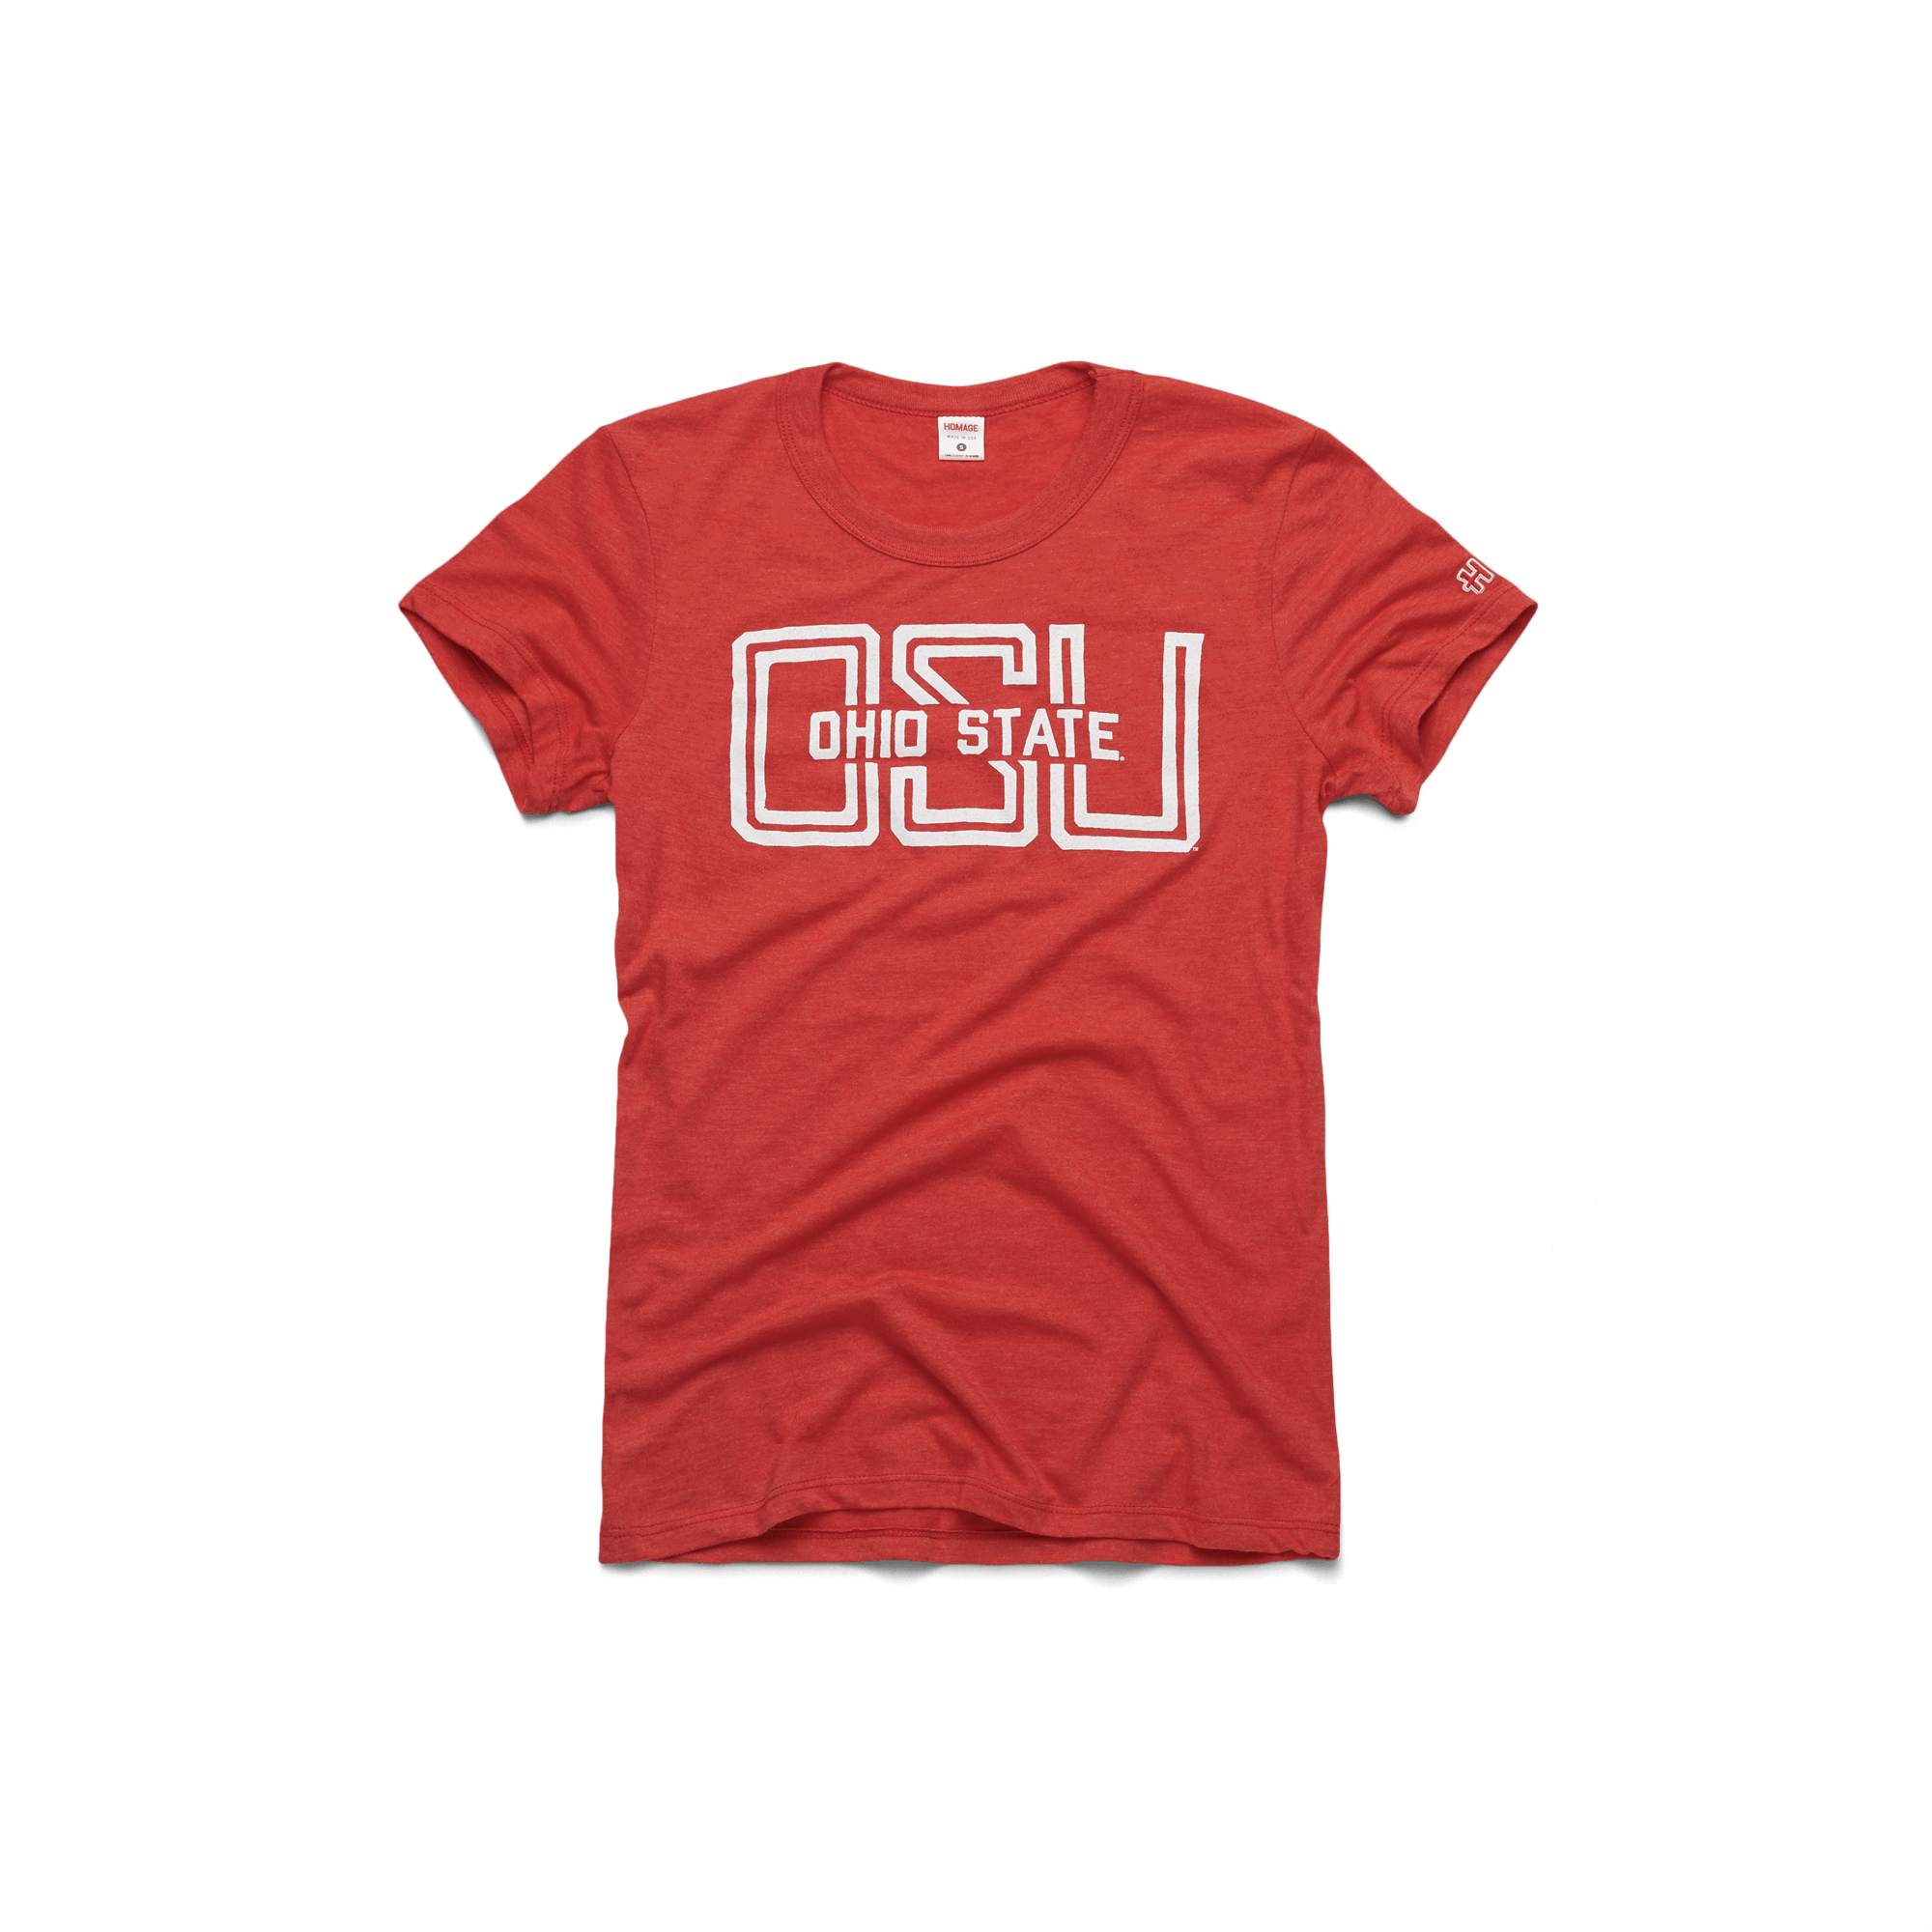 Lovely Images Of Ohio State Baby Clothes - Cutest Baby ...